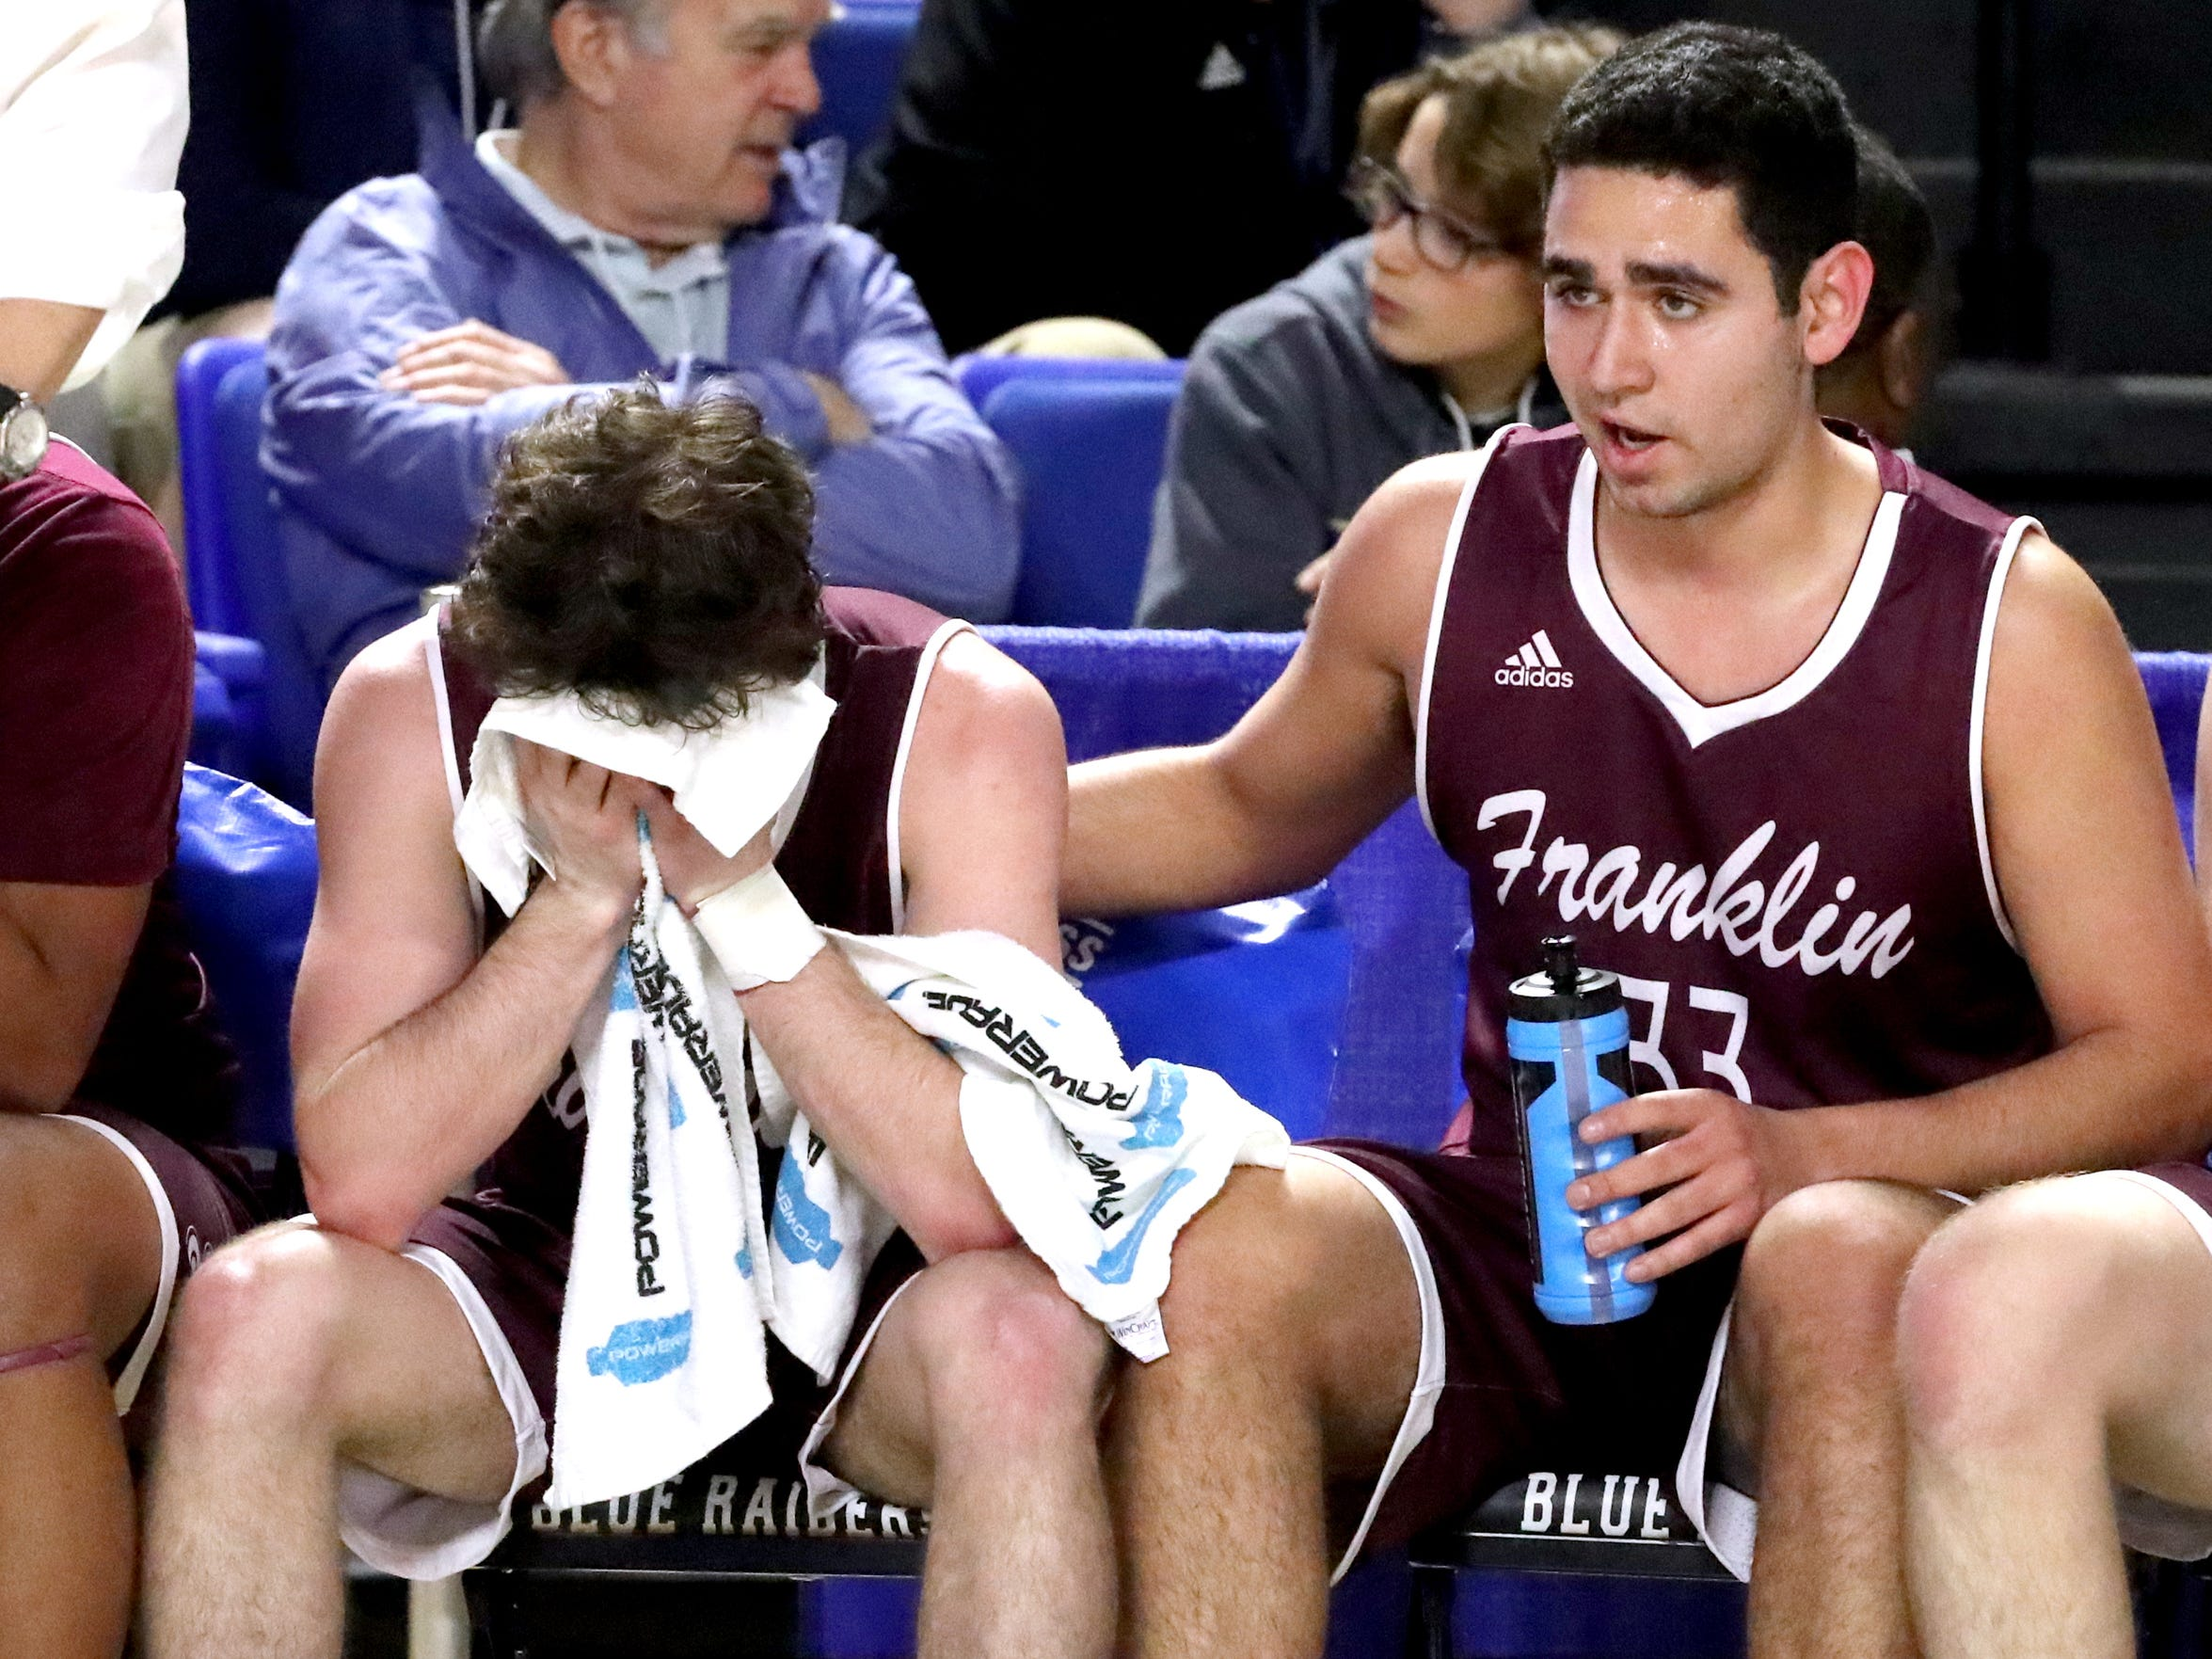 Franklin High School seniors Franklin's Luis Sanchez (33), right, comforts Reese Glover (3),left as they react to losing during the final moments in the quarterfinal round of the TSSAA Class AAA Boys State Tournament against Bearden, on Wednesday, March 13, 2019, at Murphy Center in Murfreesboro, Tenn.